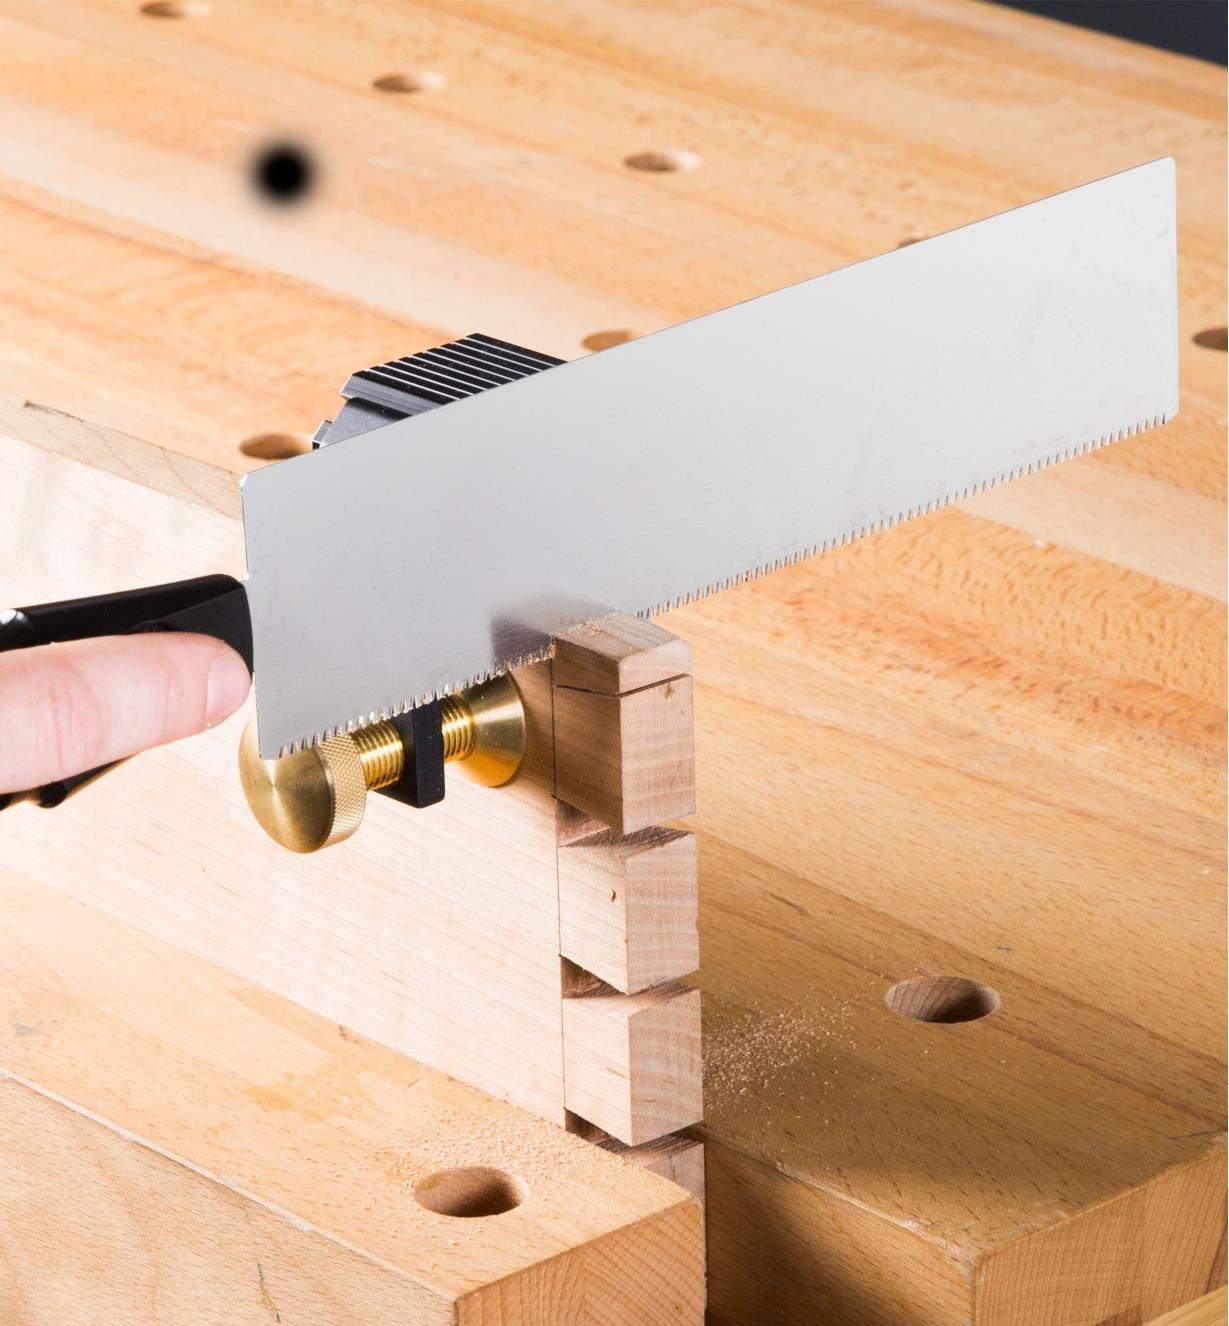 Right-angle saw guide